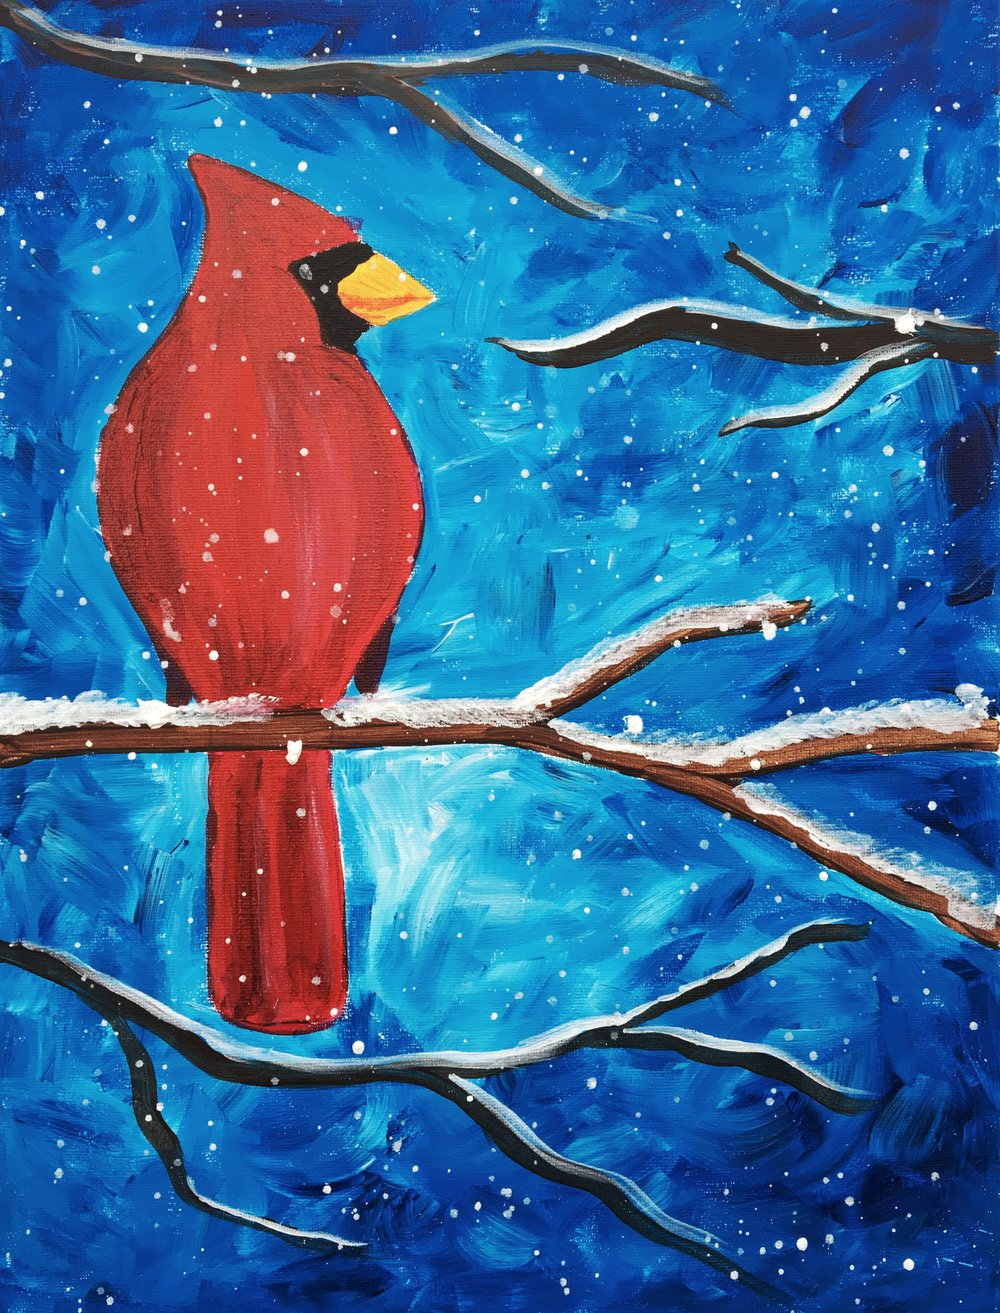 January's subject: Cardinal in a Winter Scene